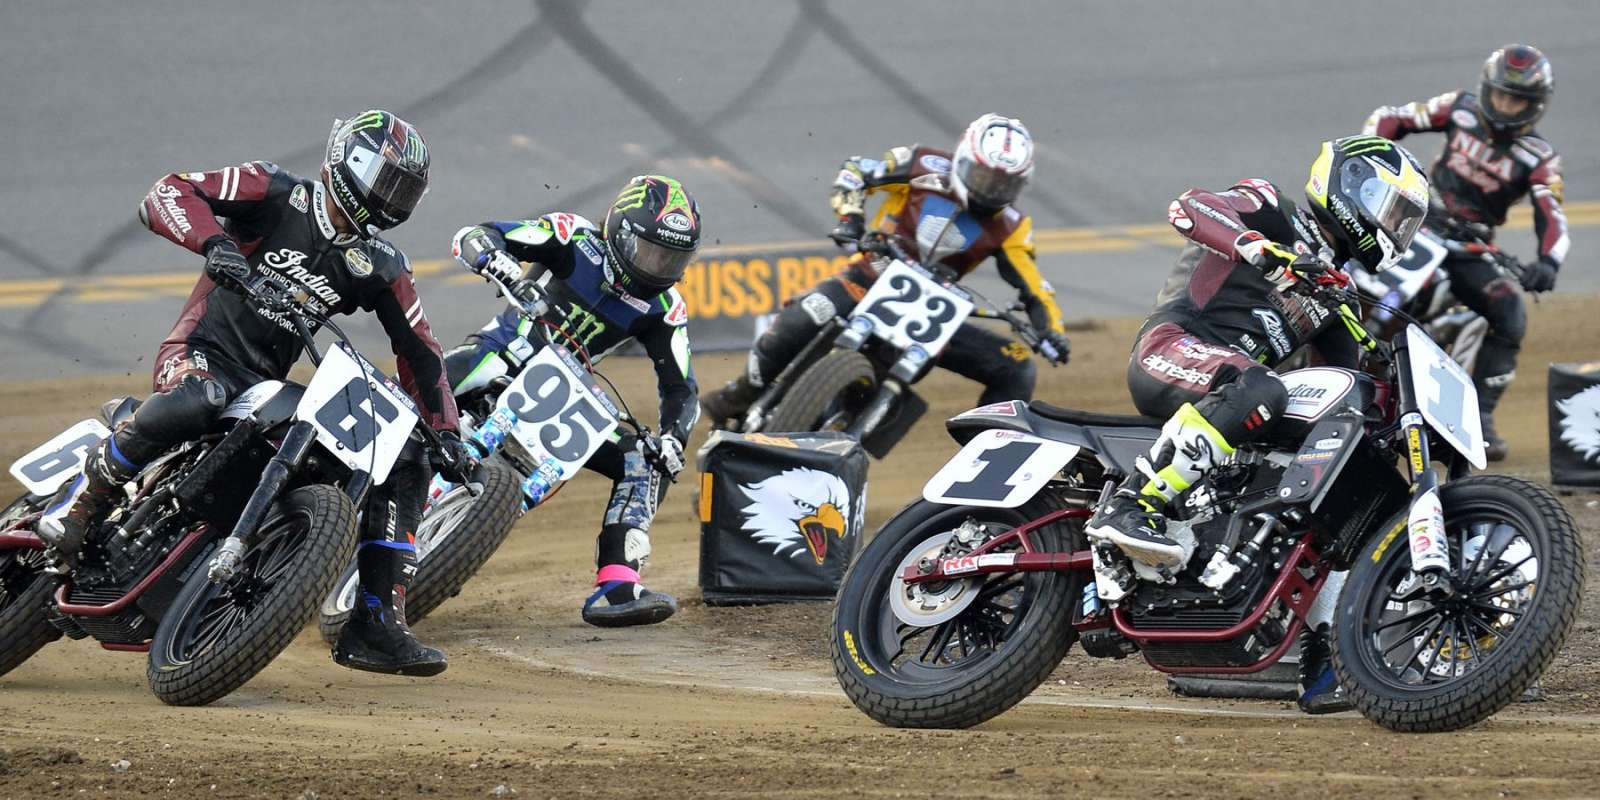 Photos from the American Flat Track event at Daytona Beach, FL